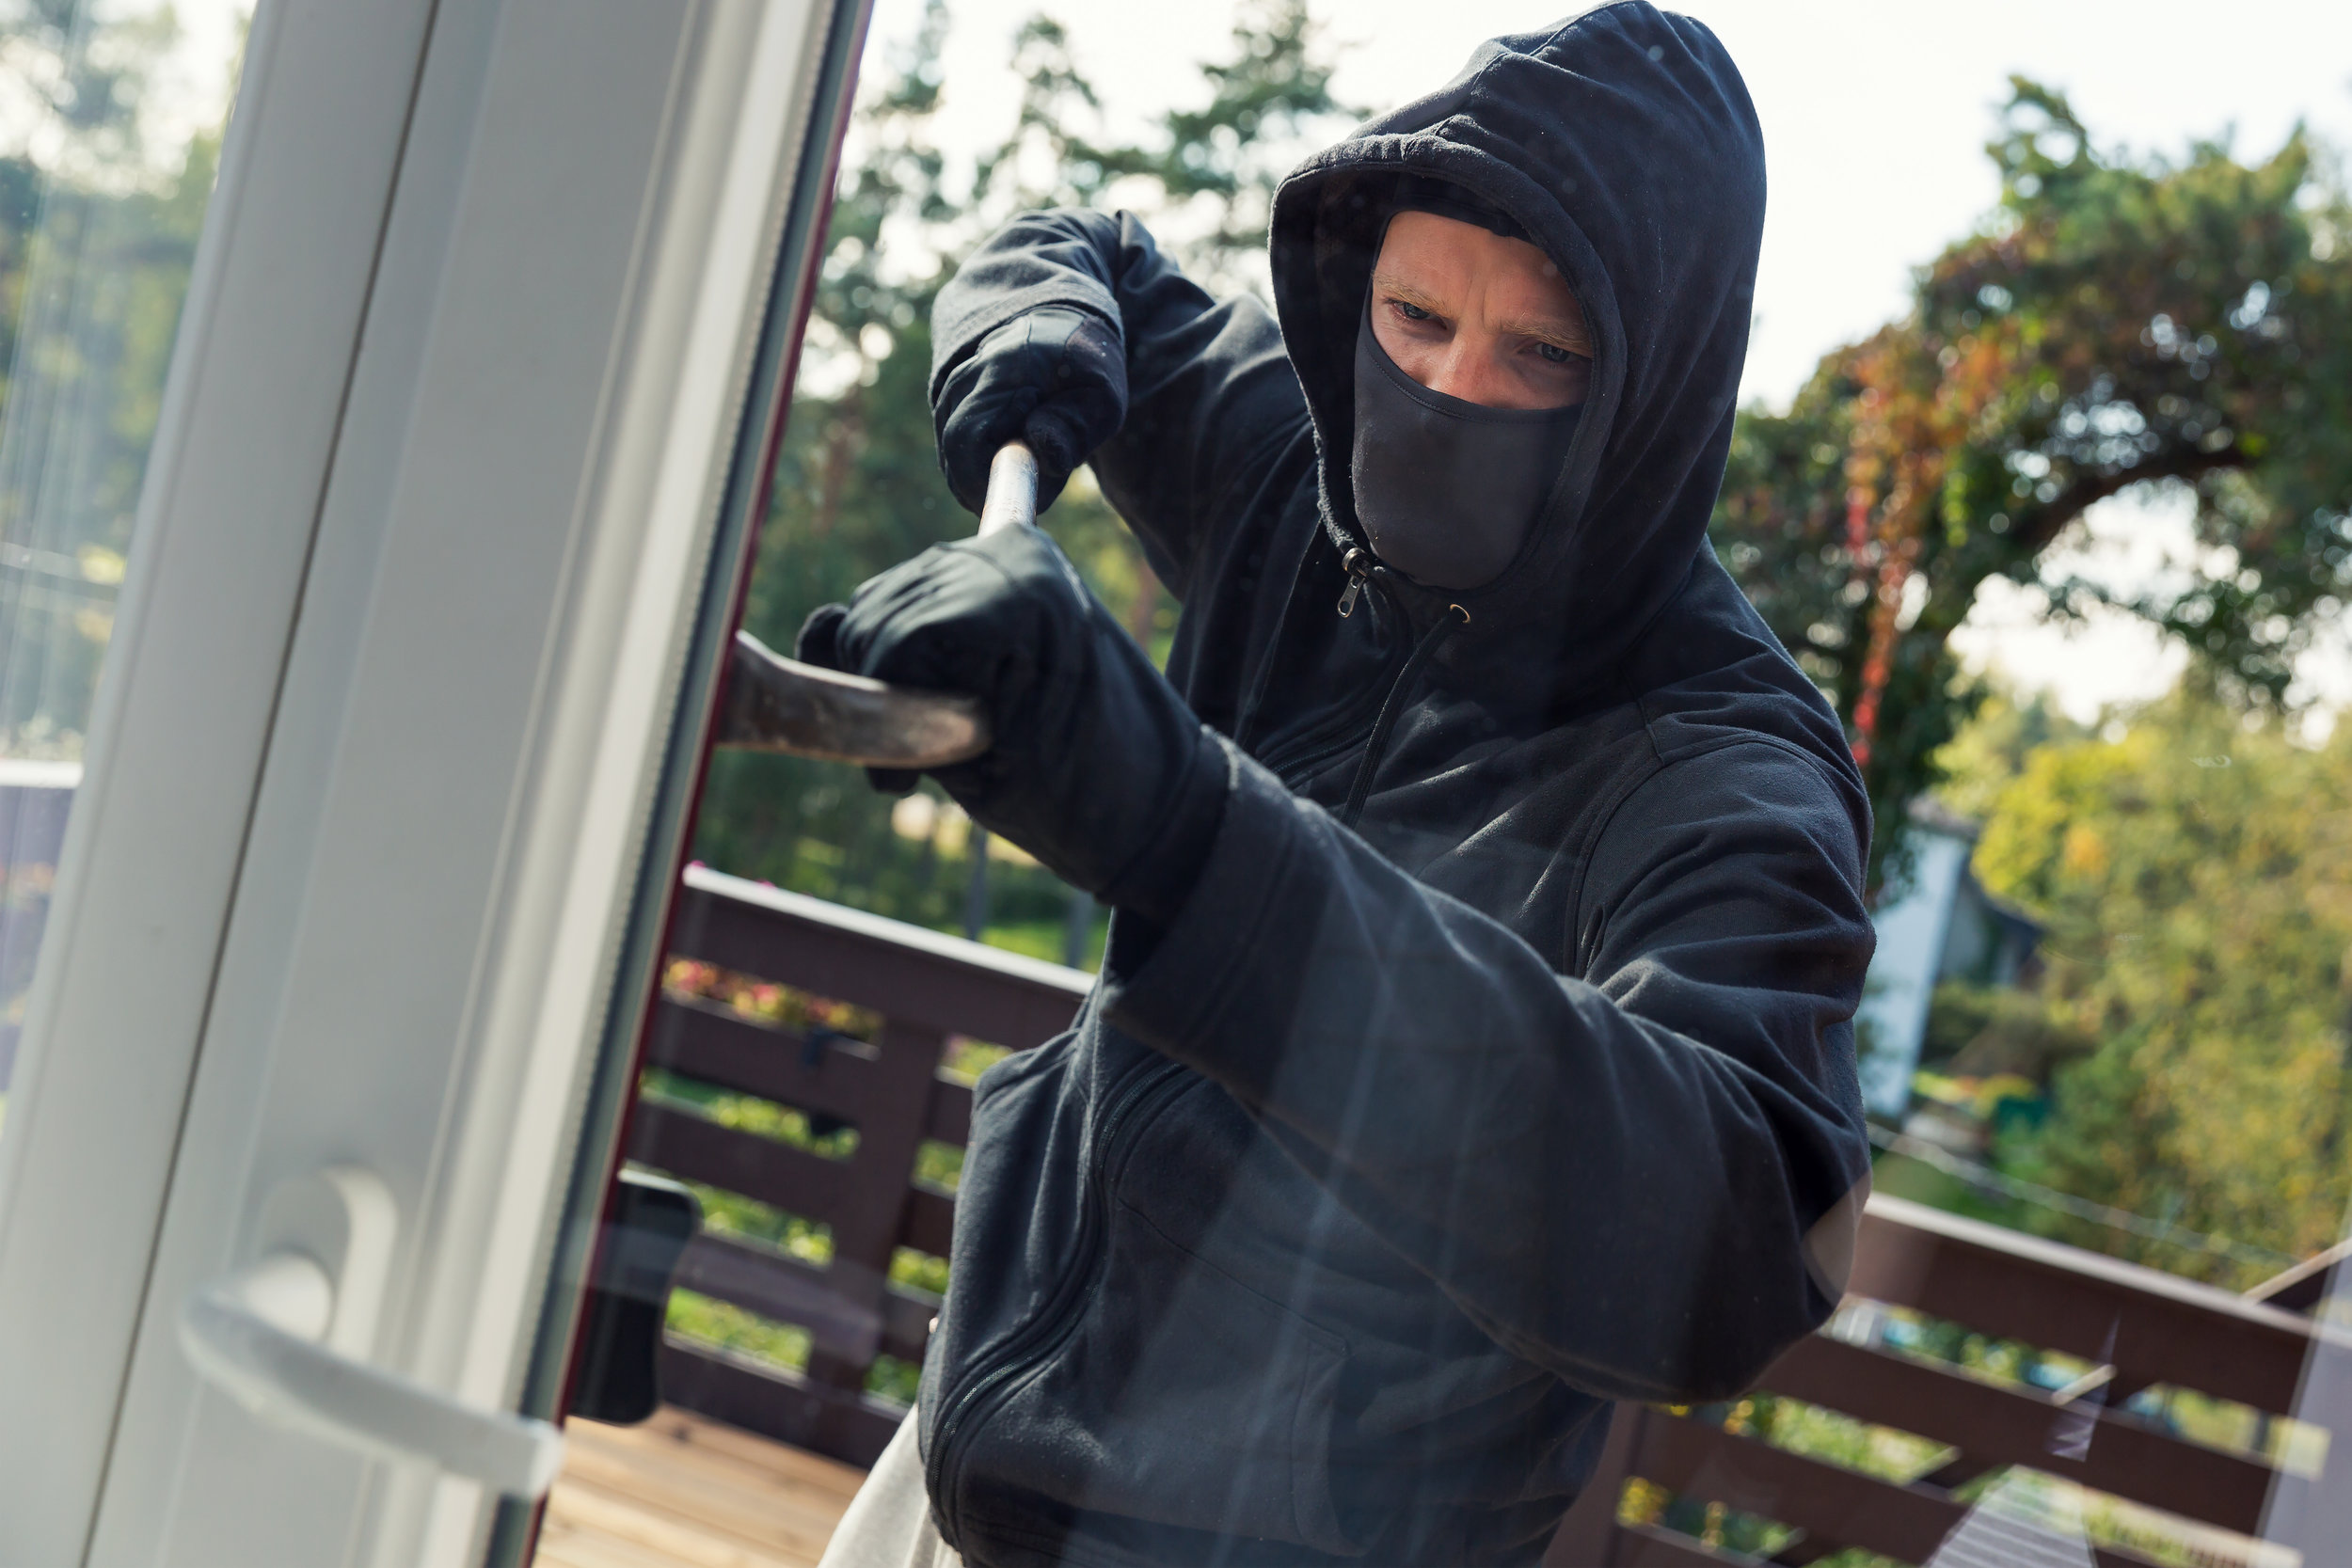 1.6 million home break-ins occur per year on average.    Homes unoccupied are 6% more likely  of being targeted.  - FBI Uniform Crime Reporting Statistics www.alarms.org